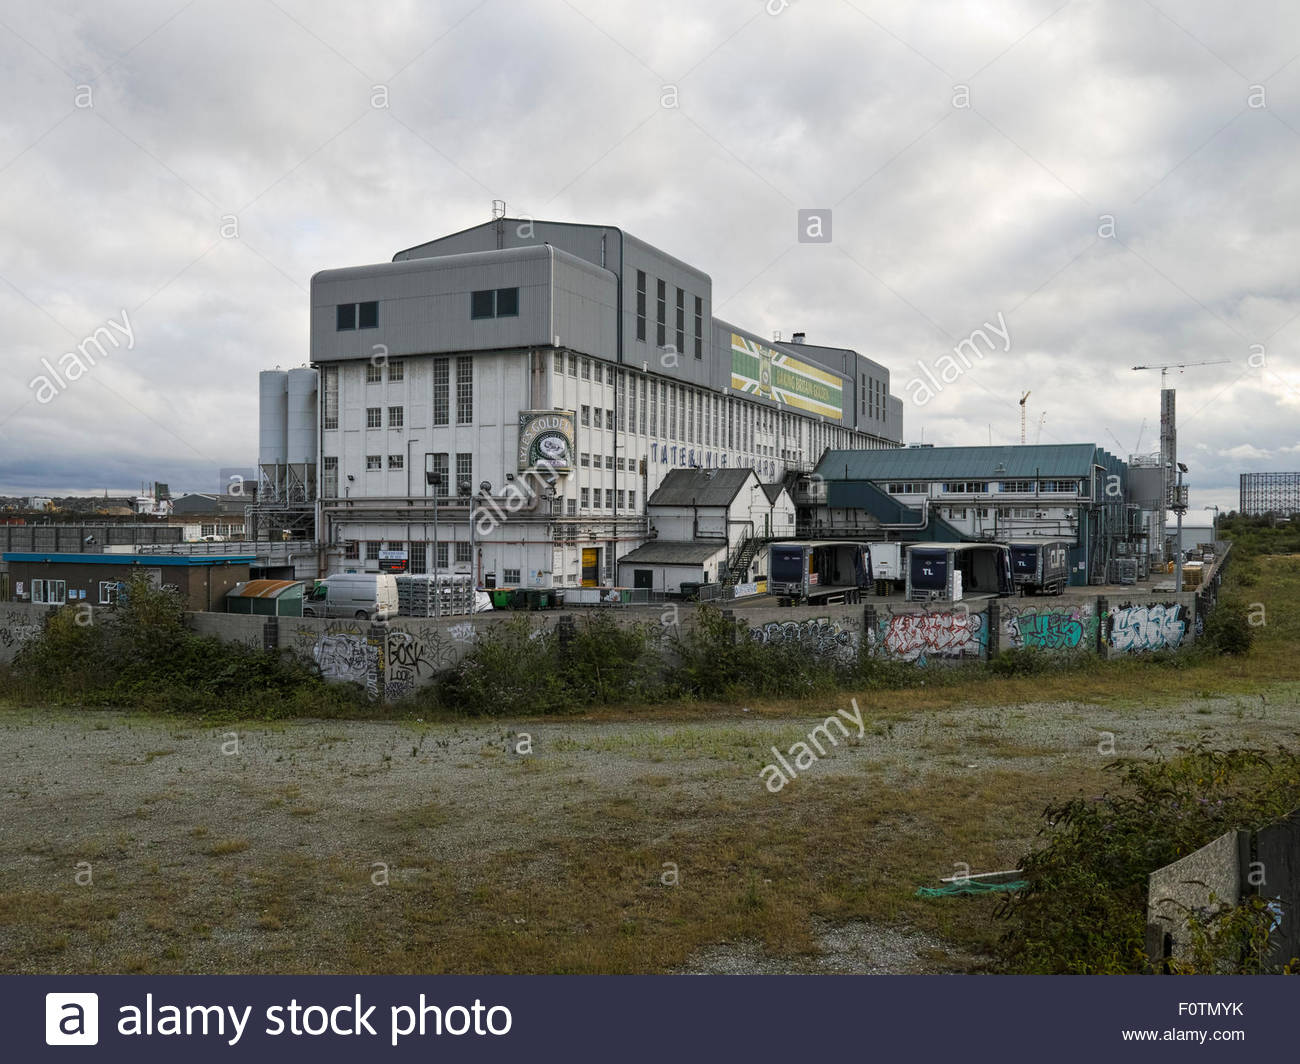 Tate and Lyle factory building and industrial compound at West Silvertown: London. - Stock Image